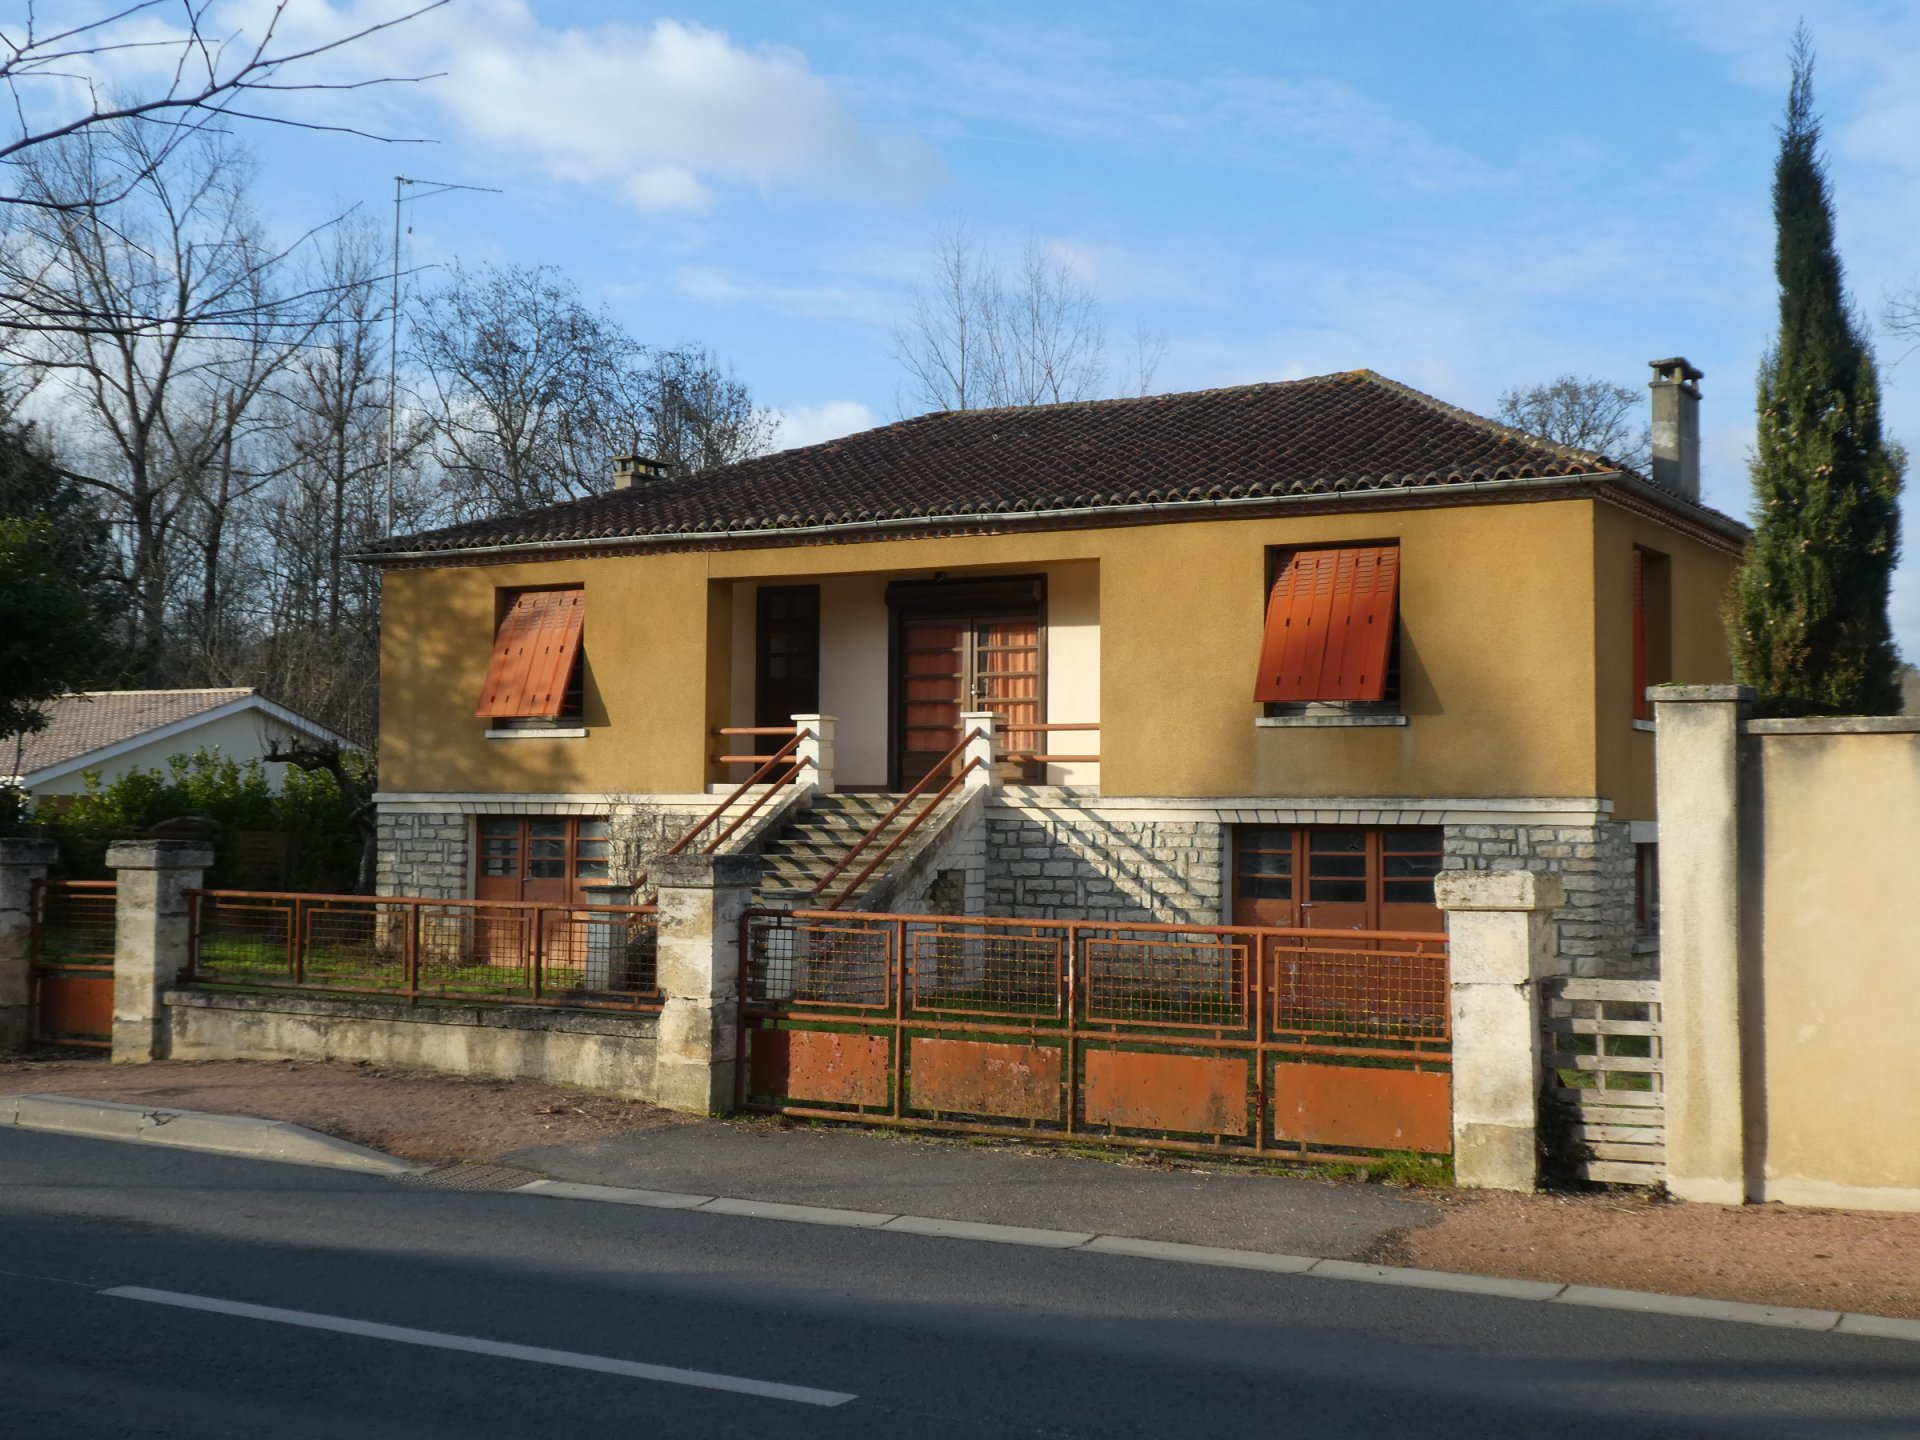 Renovation project with large garden and outbuildings